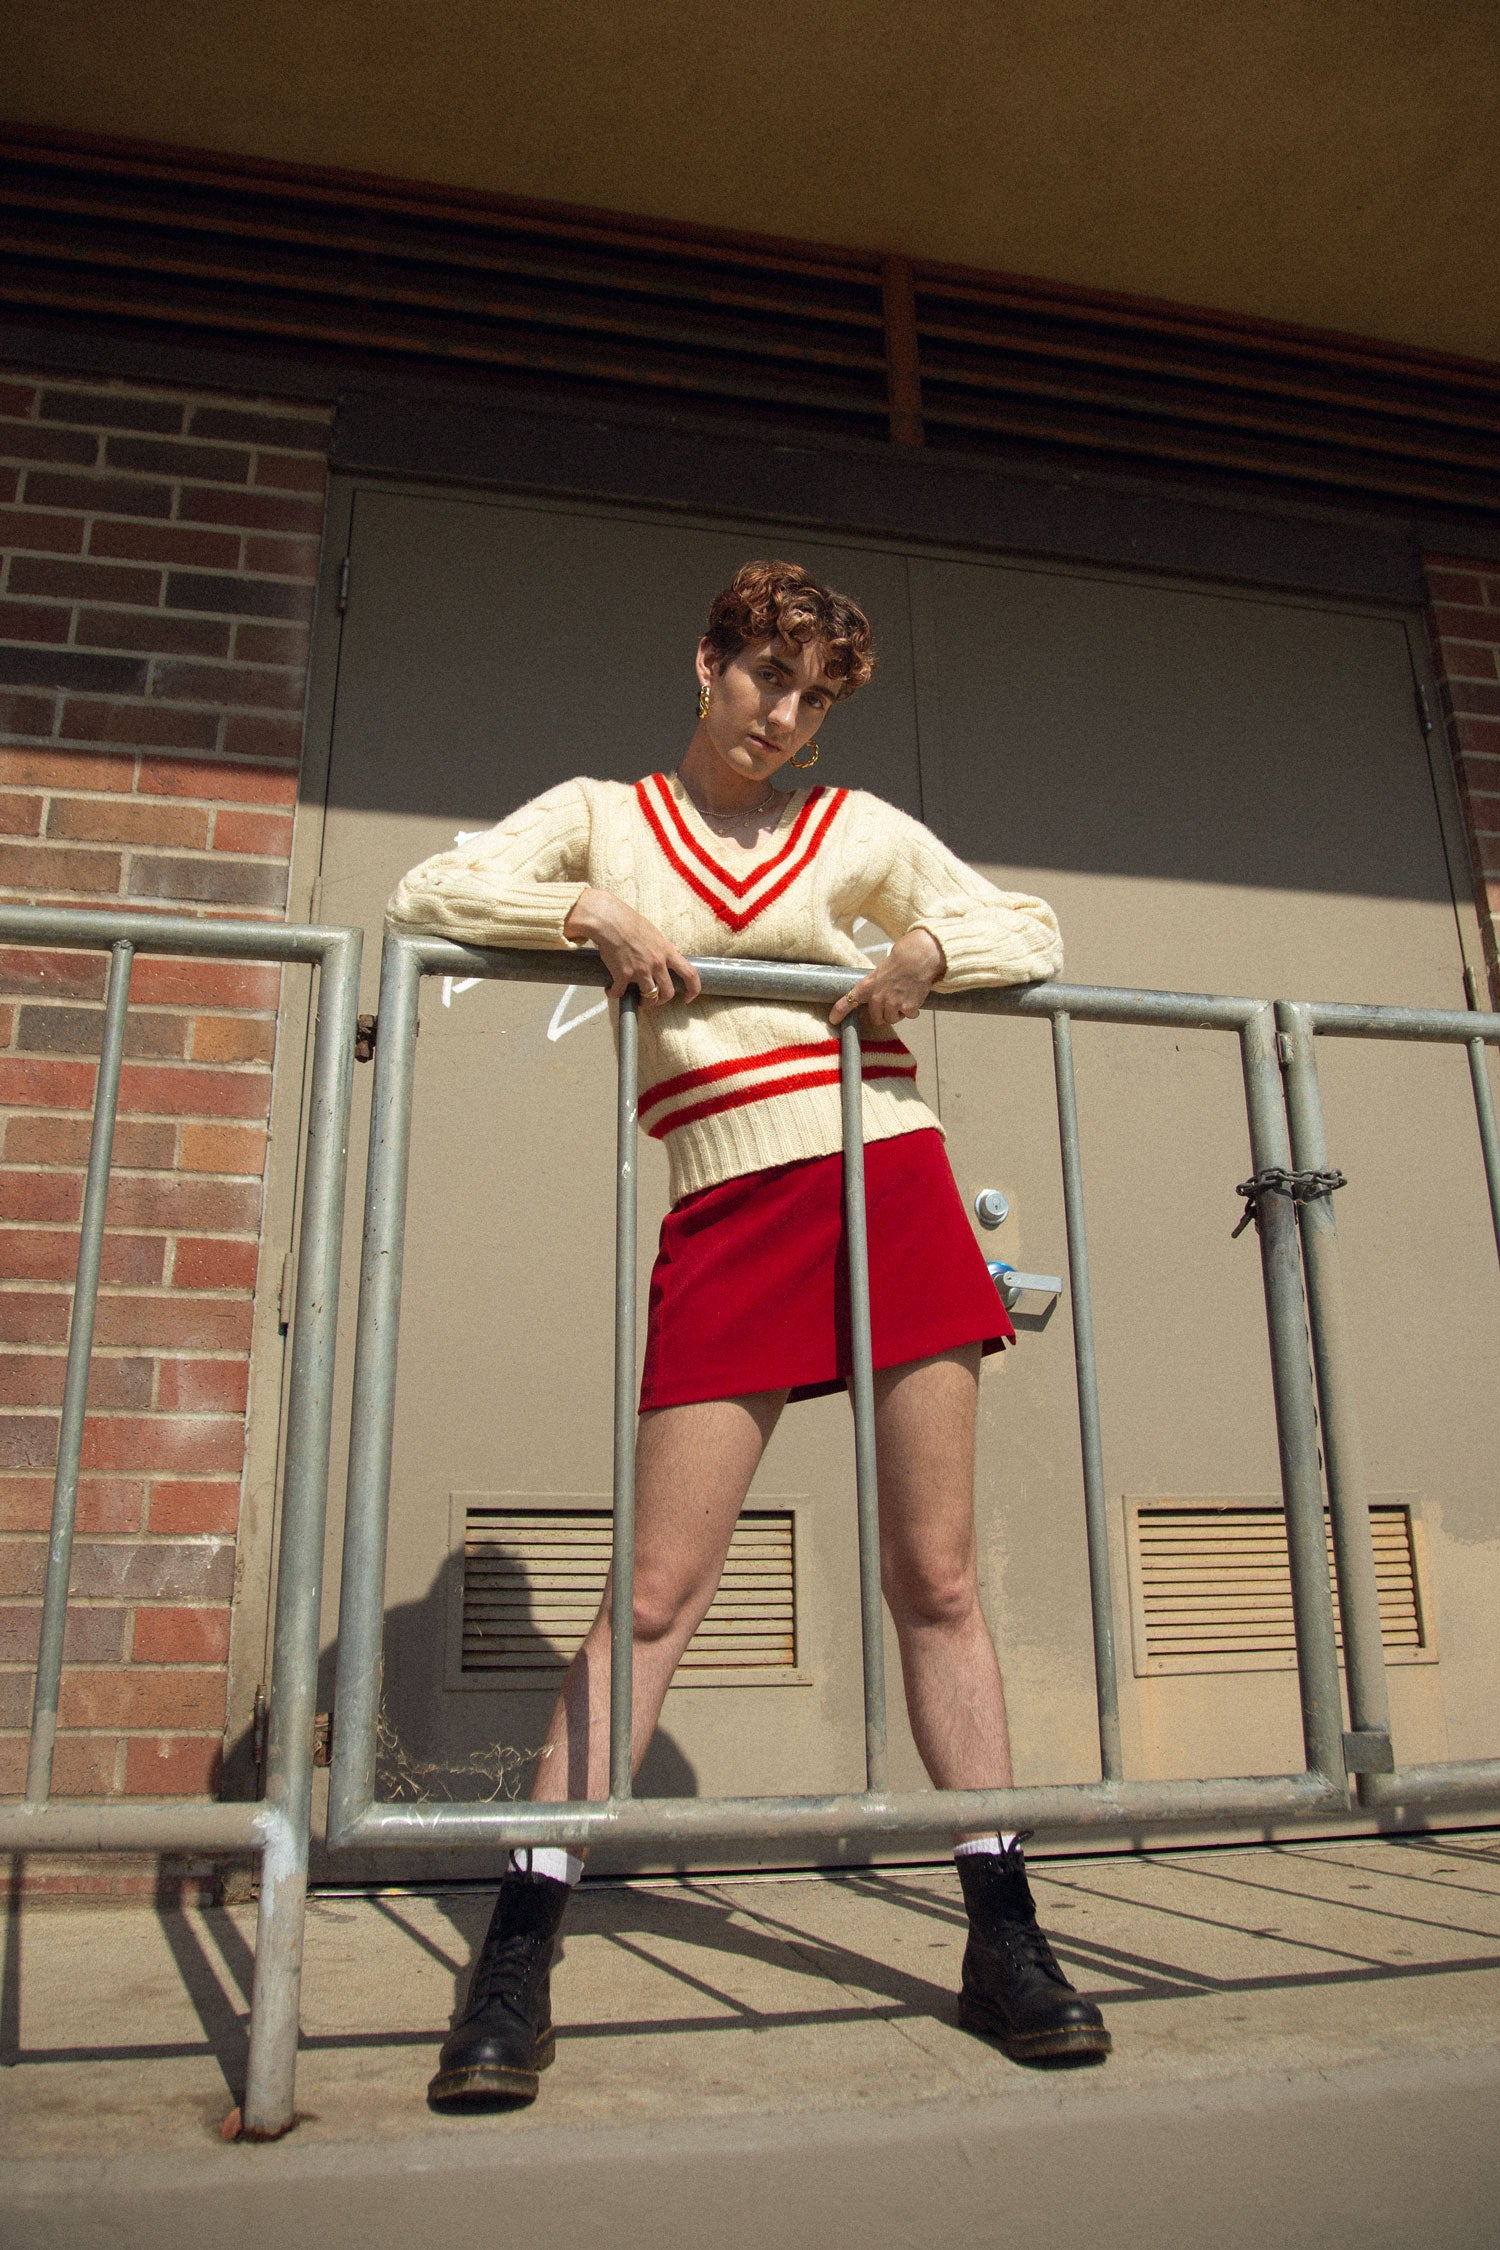 Trans femme model standing behind fence, wearing vintage 70s v neck sweater and red a-line skirt.